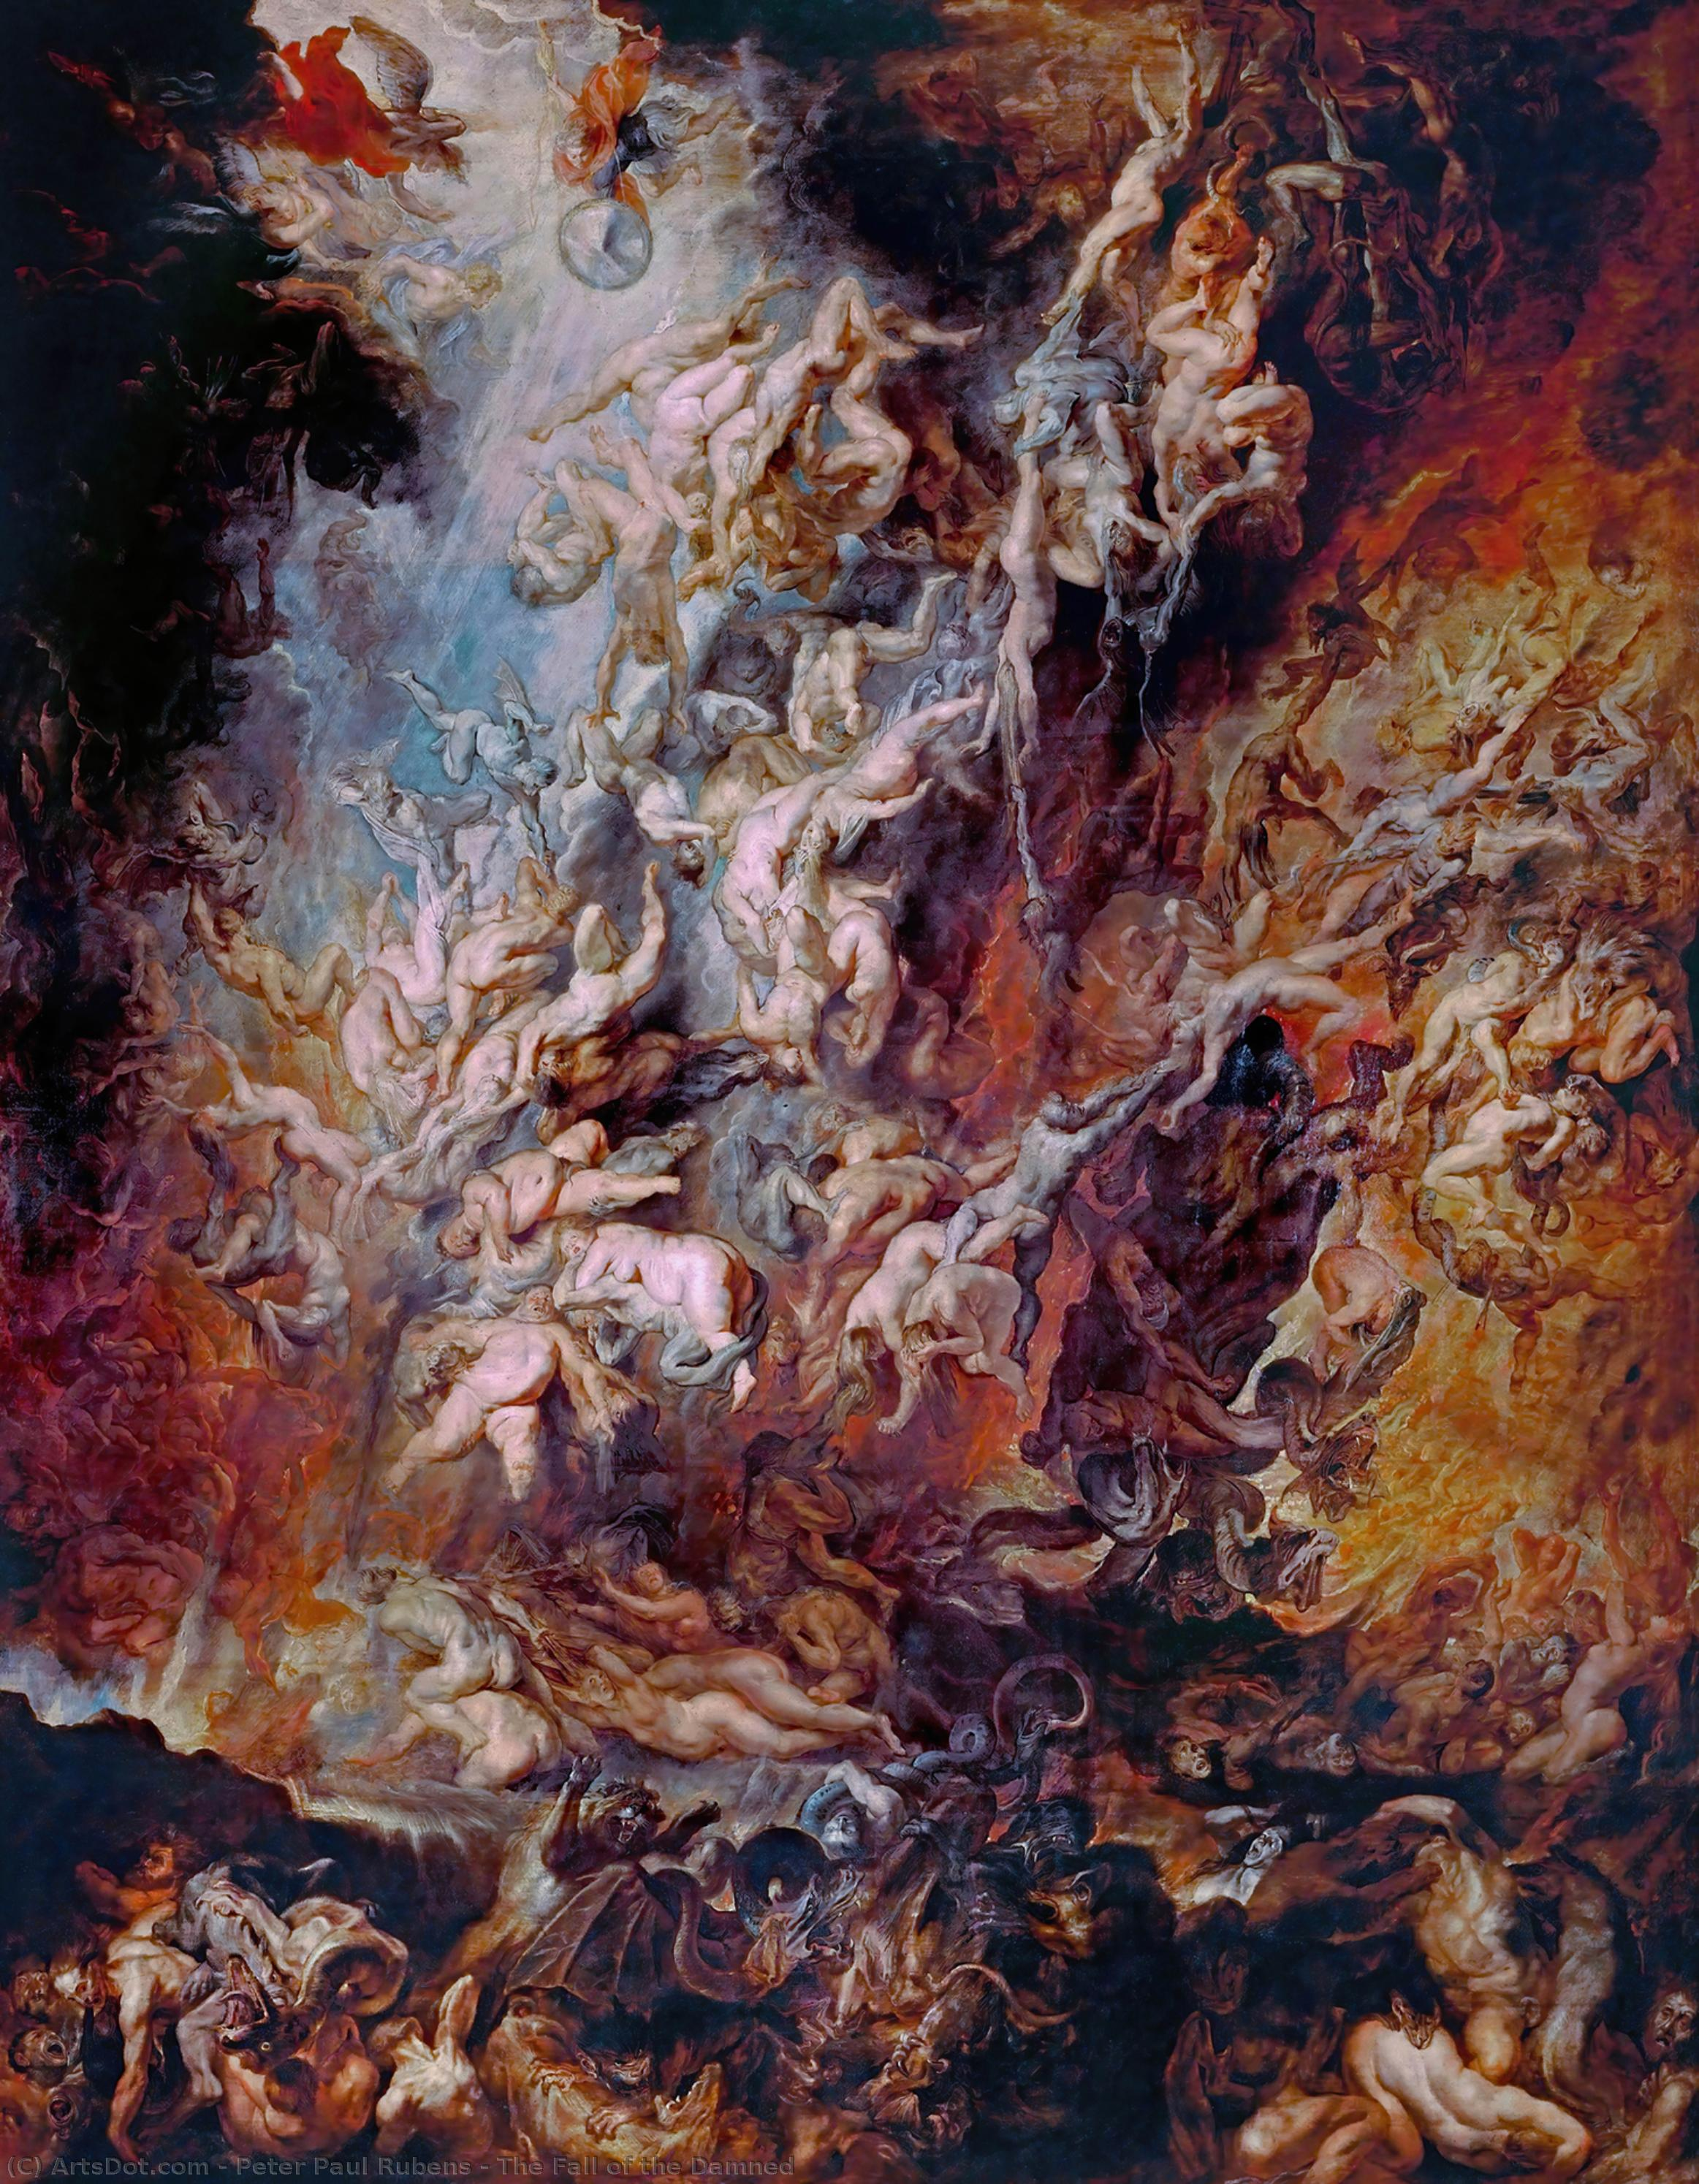 WikiOO.org - Encyclopedia of Fine Arts - Malba, Artwork Peter Paul Rubens - The Fall of the Damned